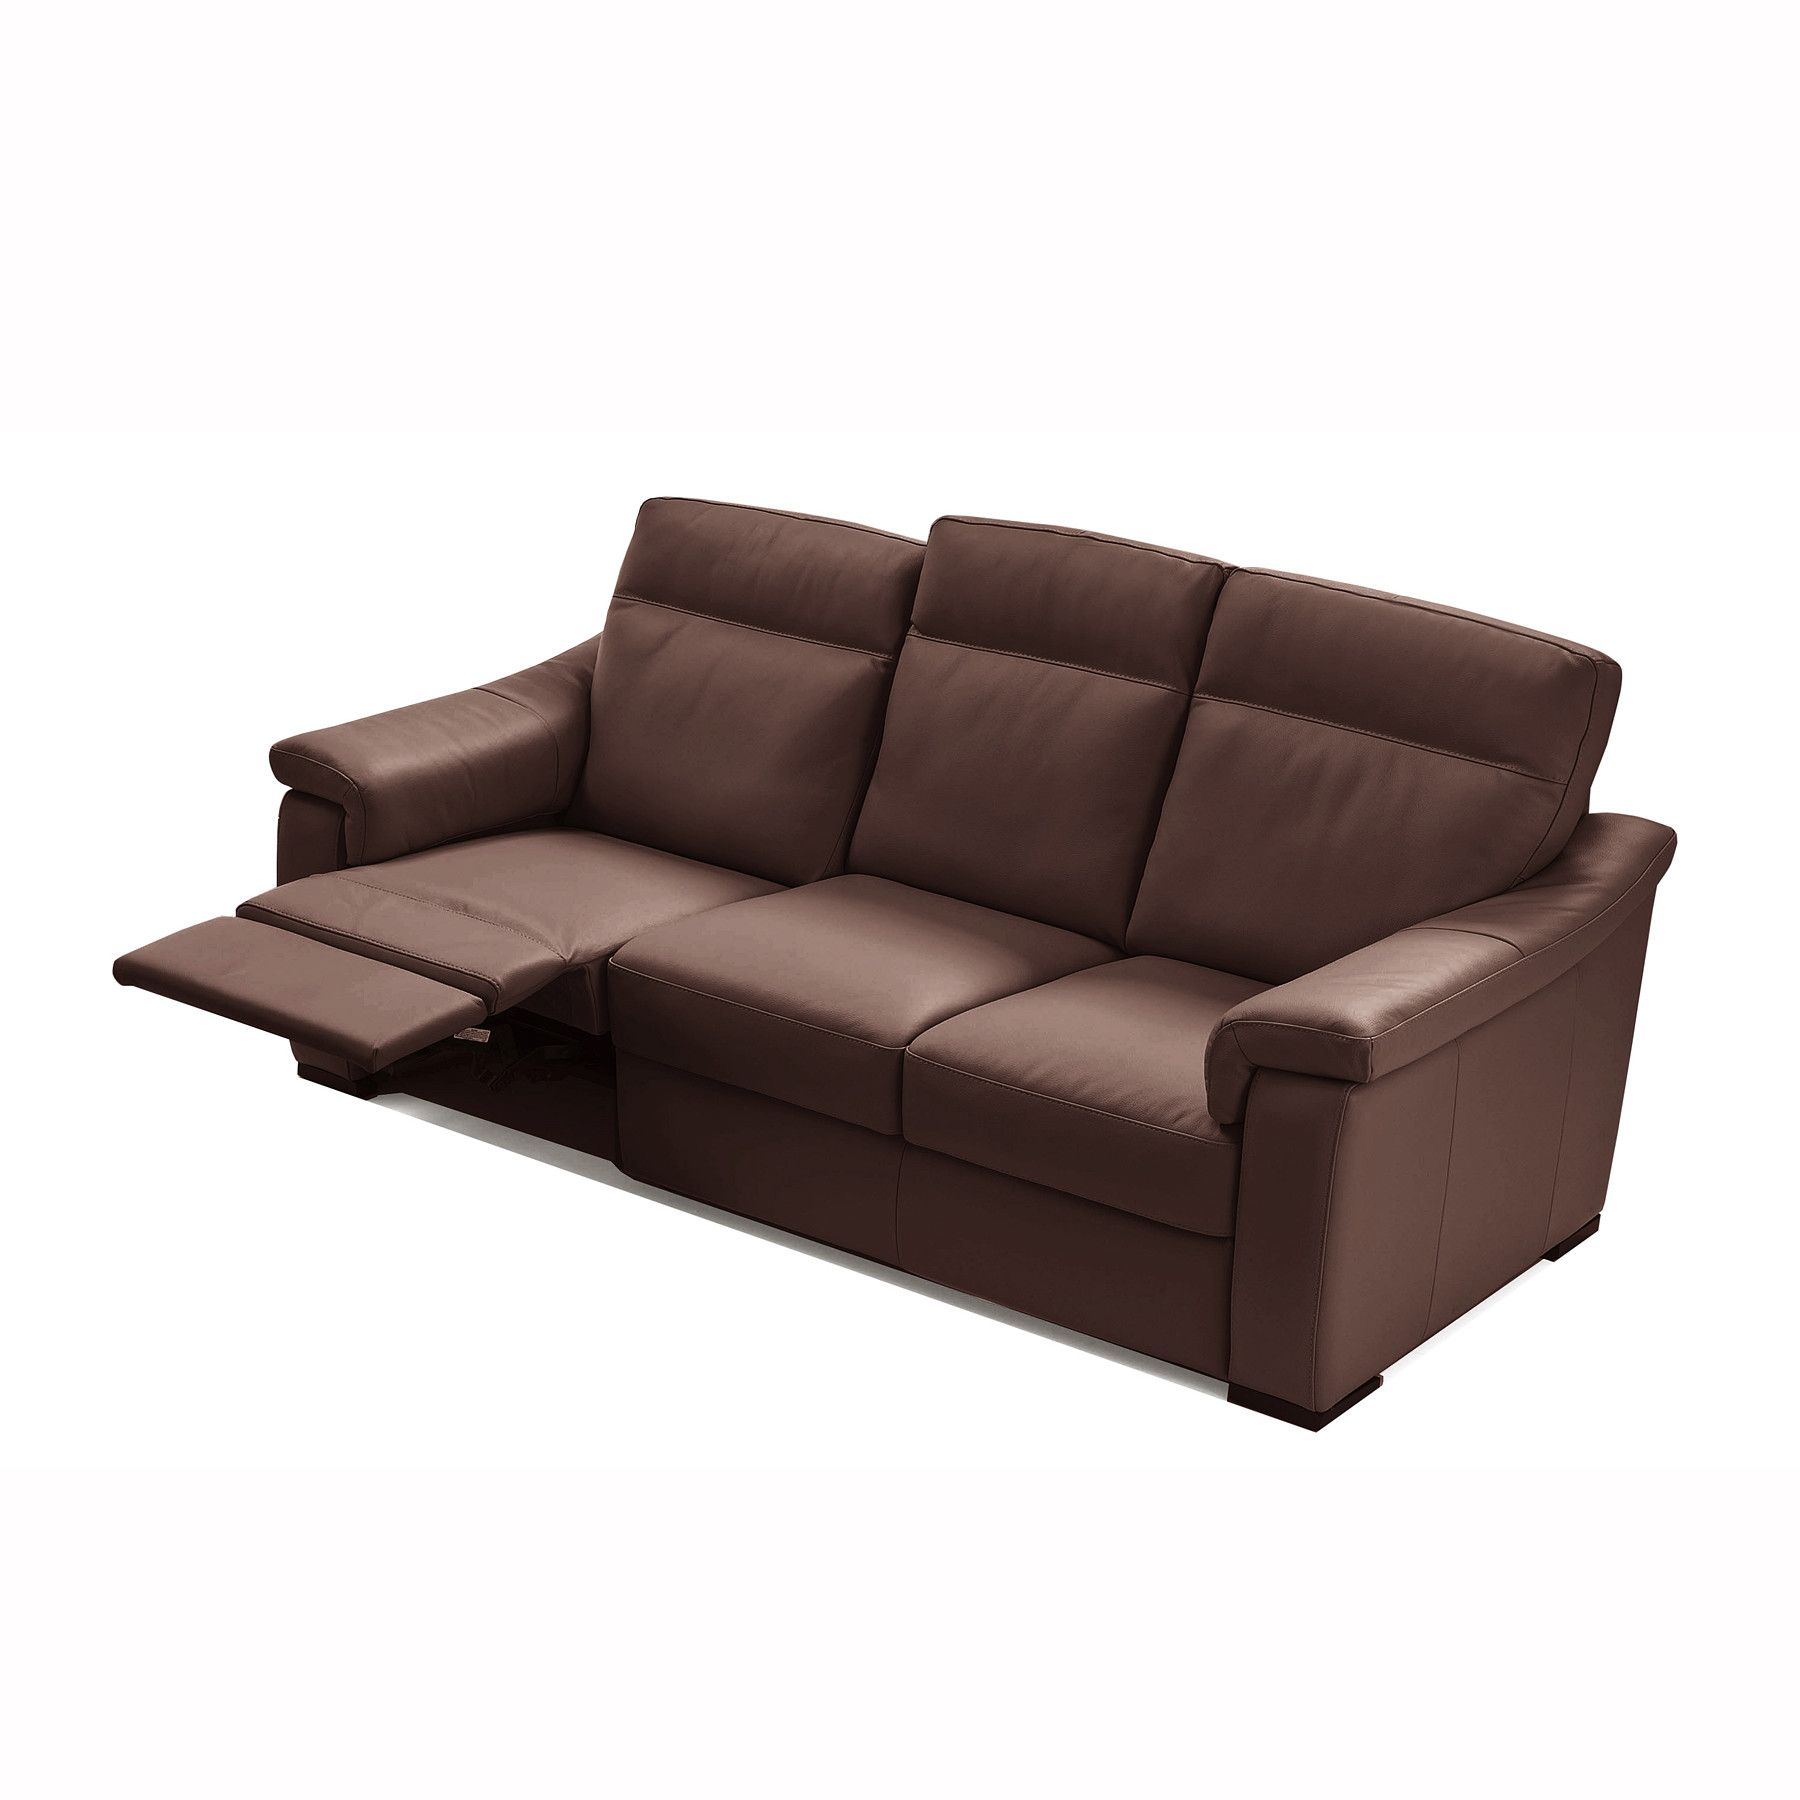 recliner dual reclining outlet furniture the luxe living inch dump sofa room